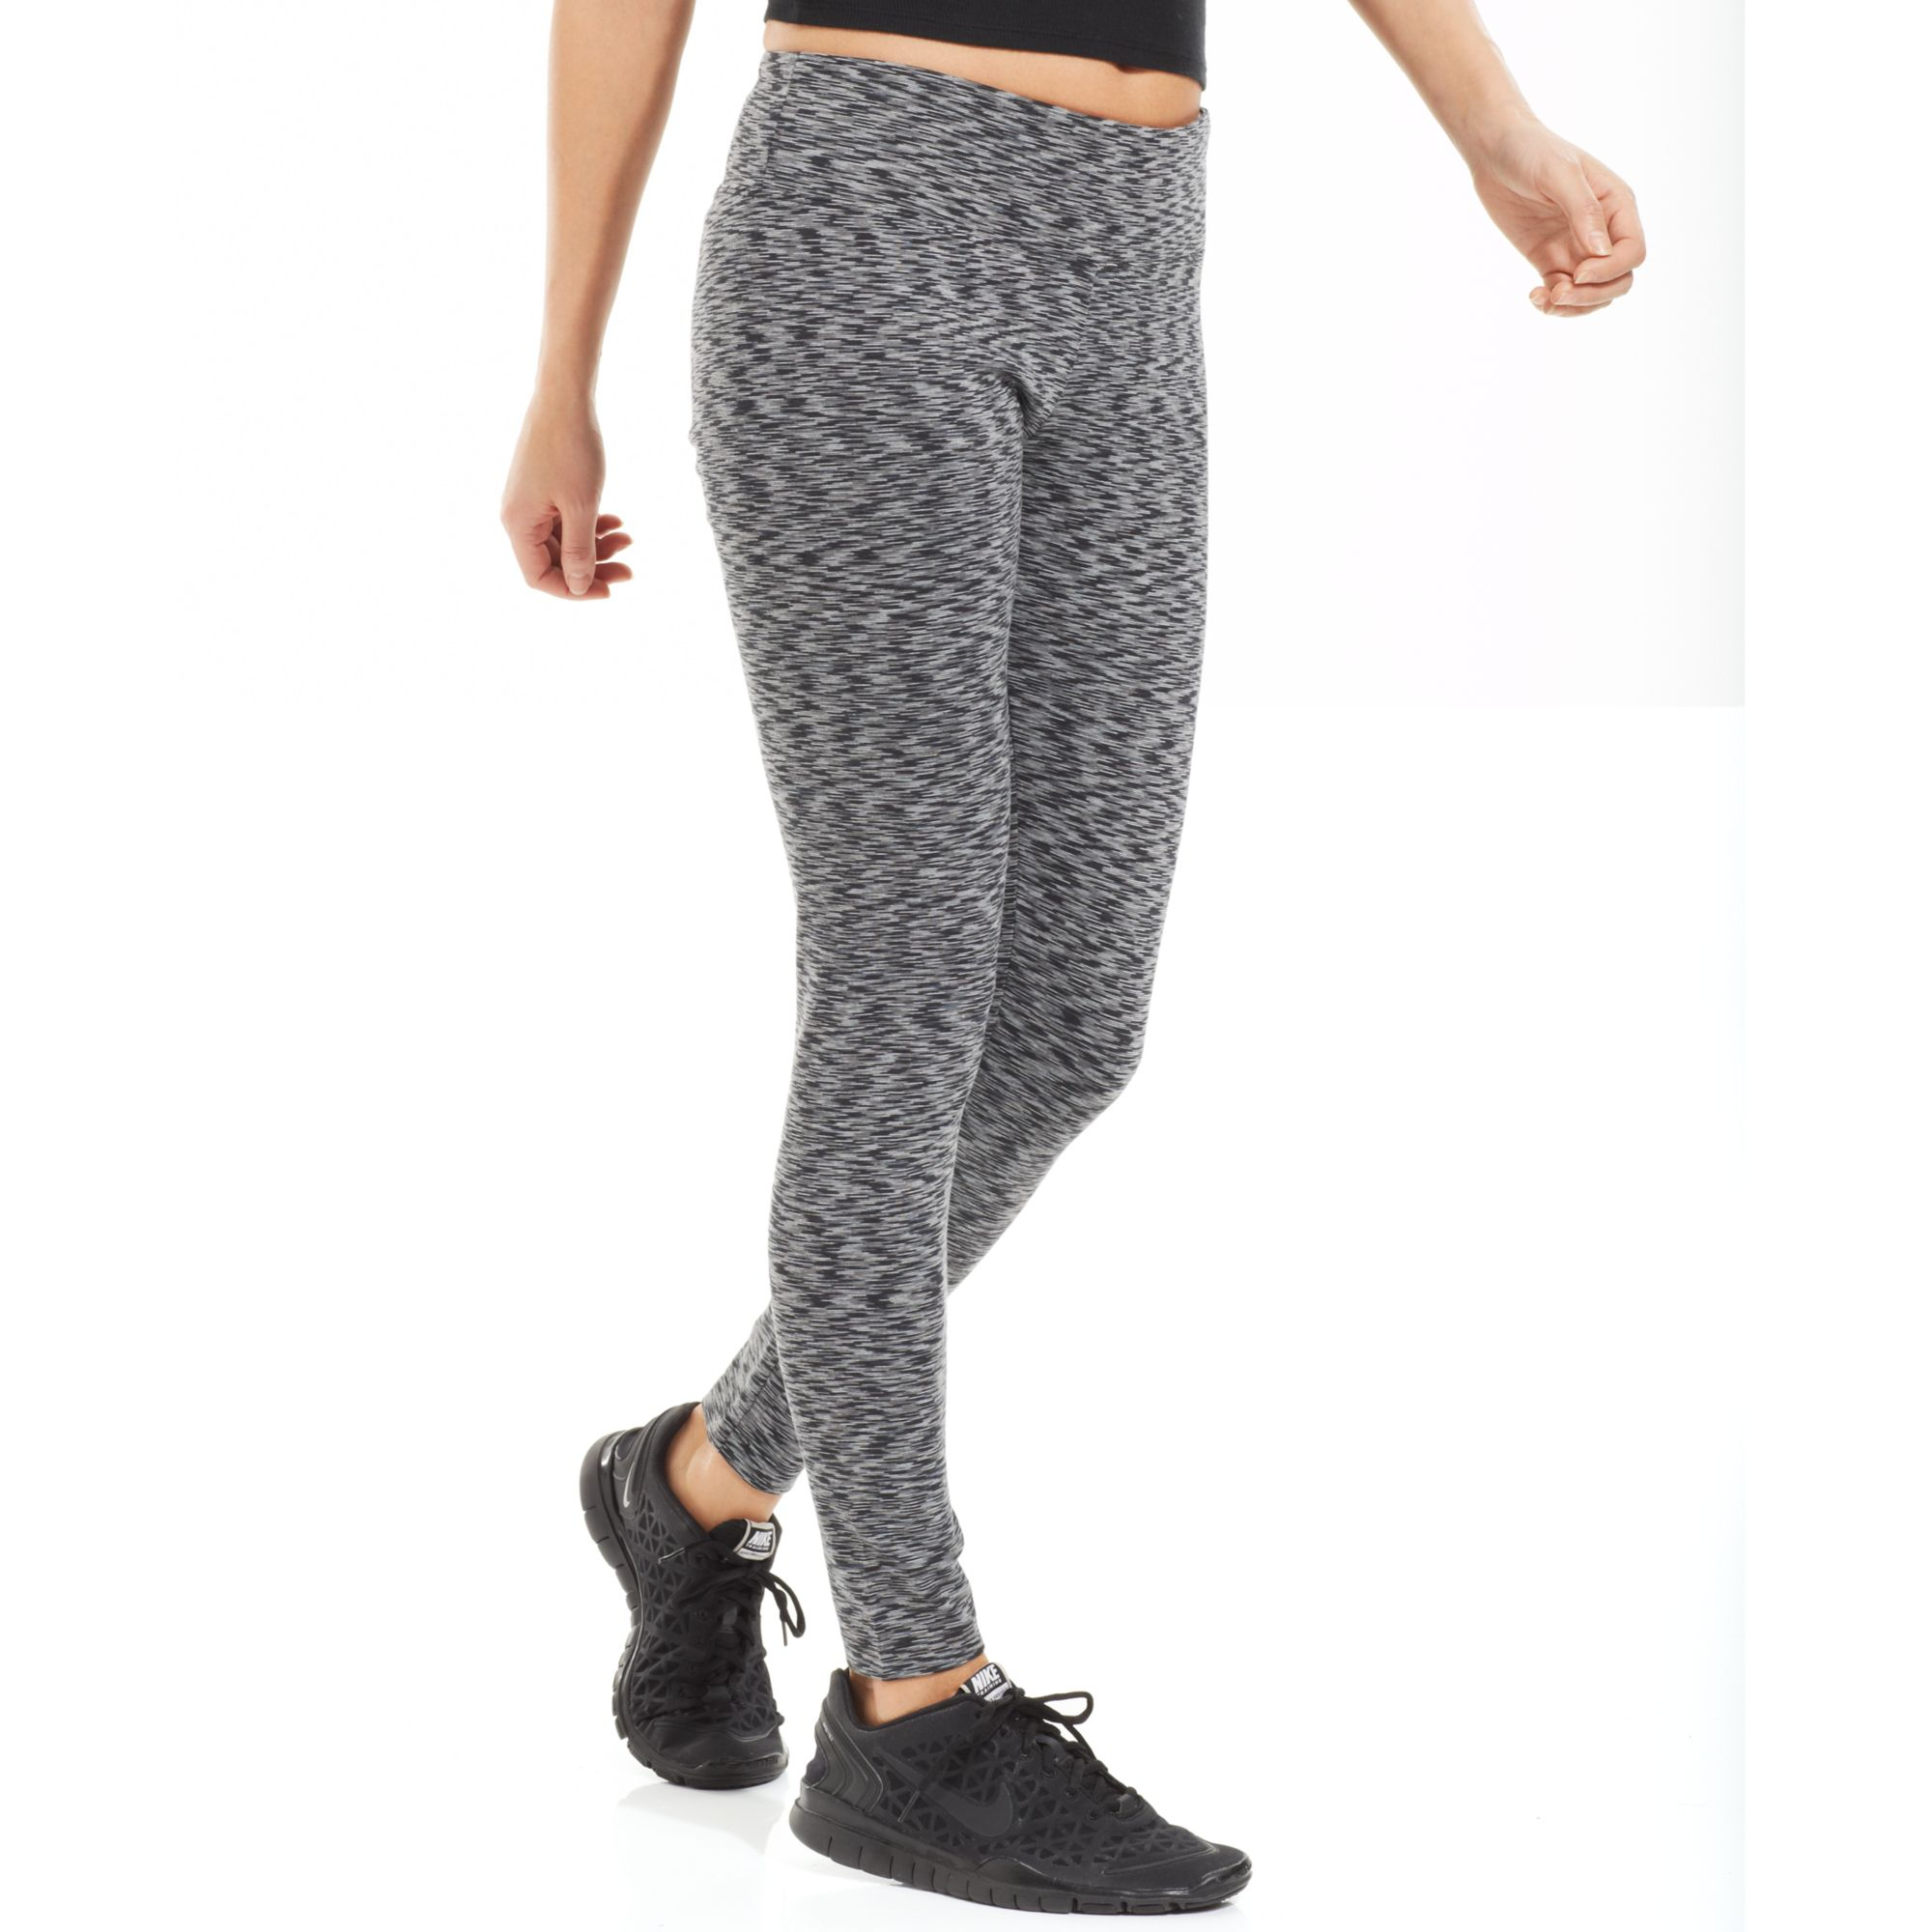 calvin klein space dye active leggings in gray charcoal lyst. Black Bedroom Furniture Sets. Home Design Ideas